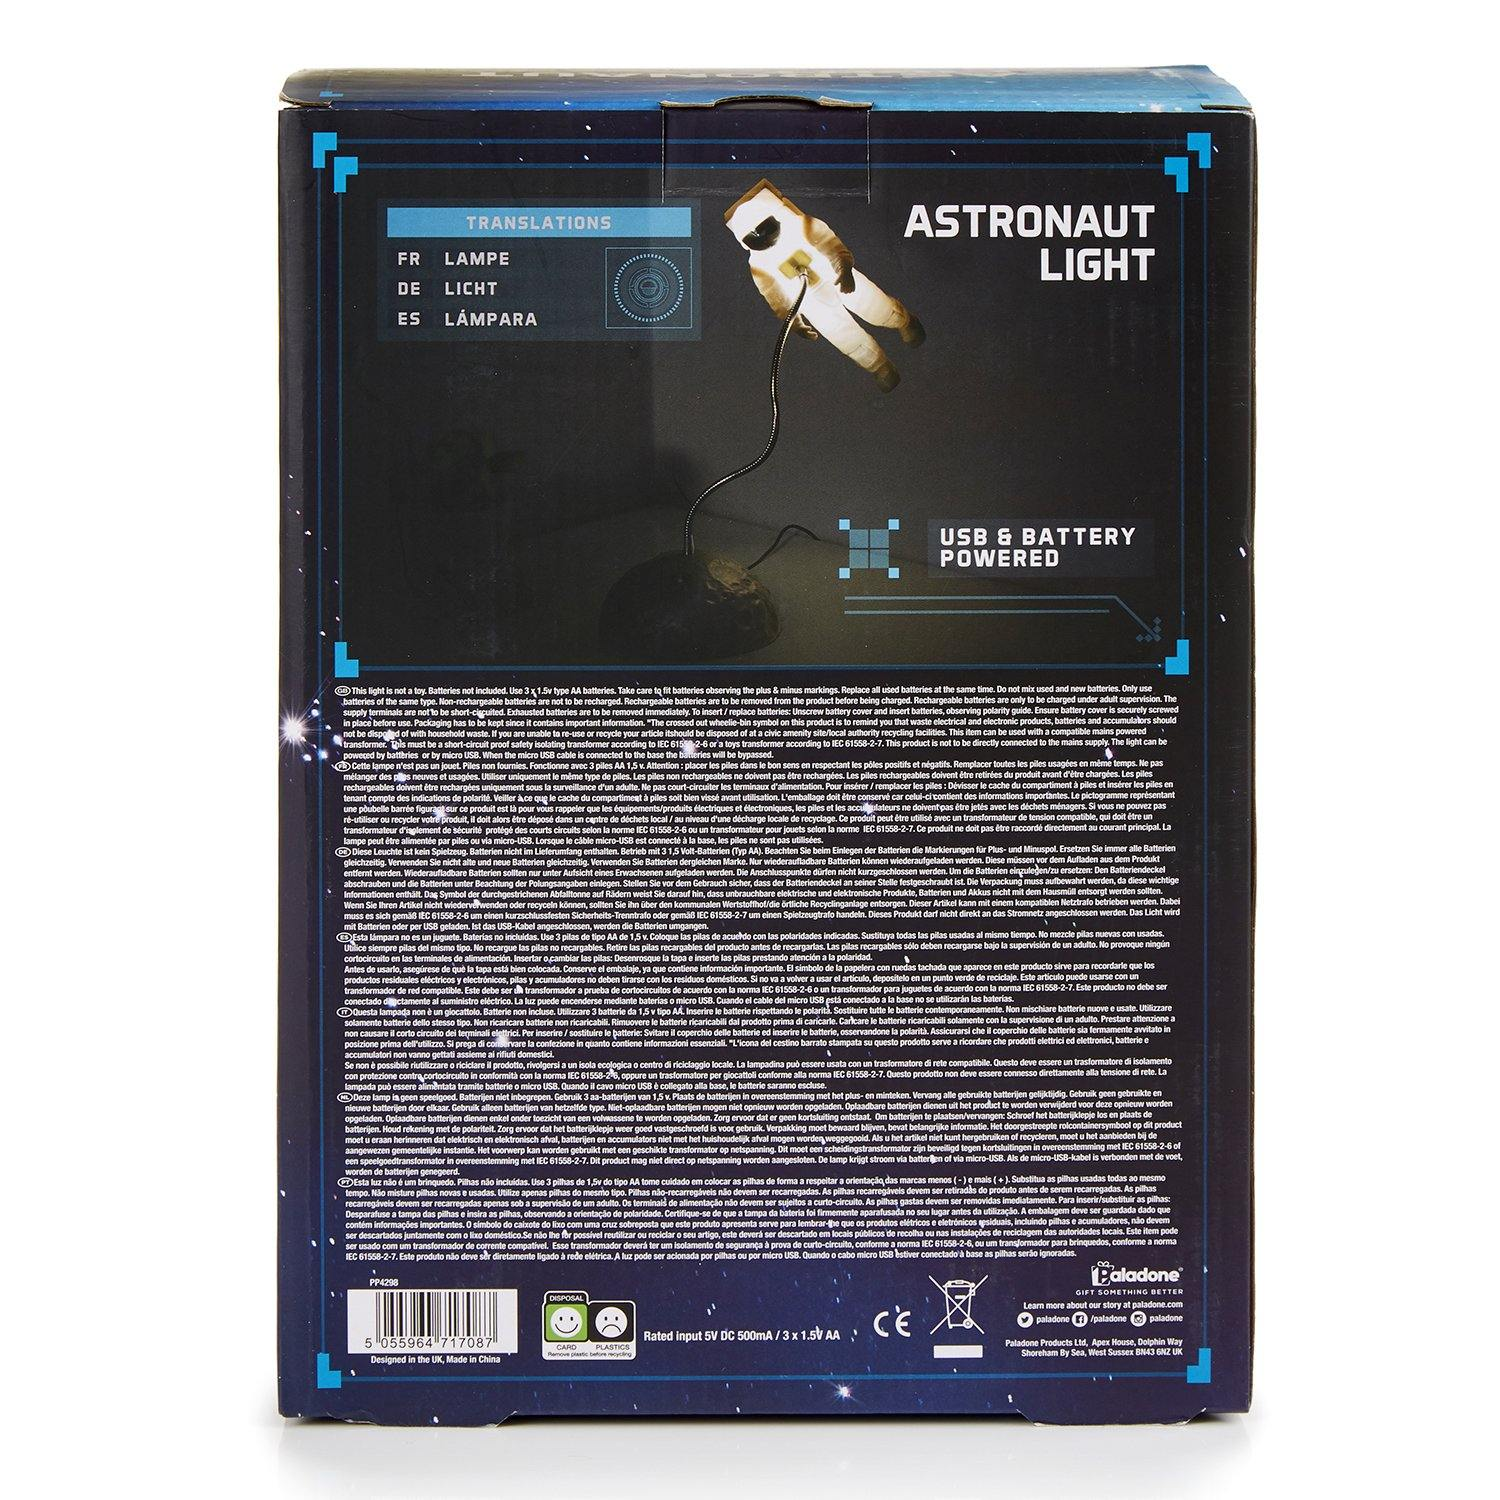 Astronaut floating light box - back